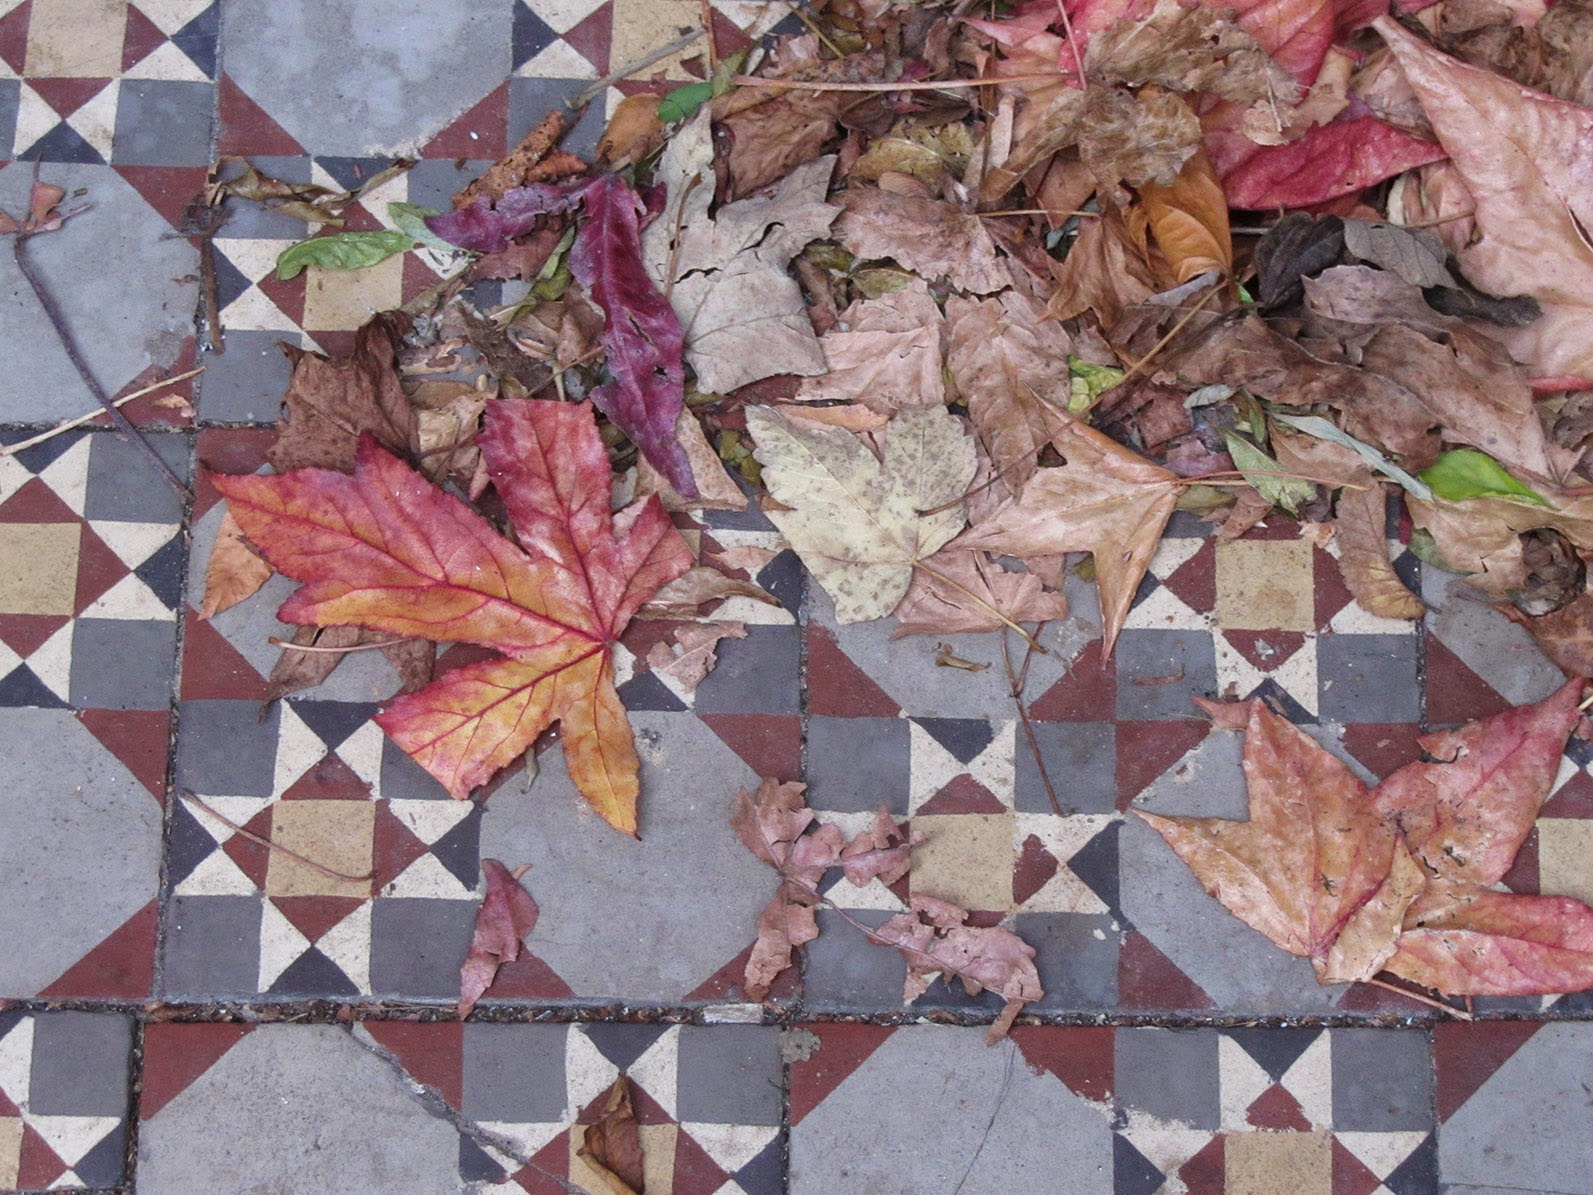 multi coloured tiles with dried up leaves